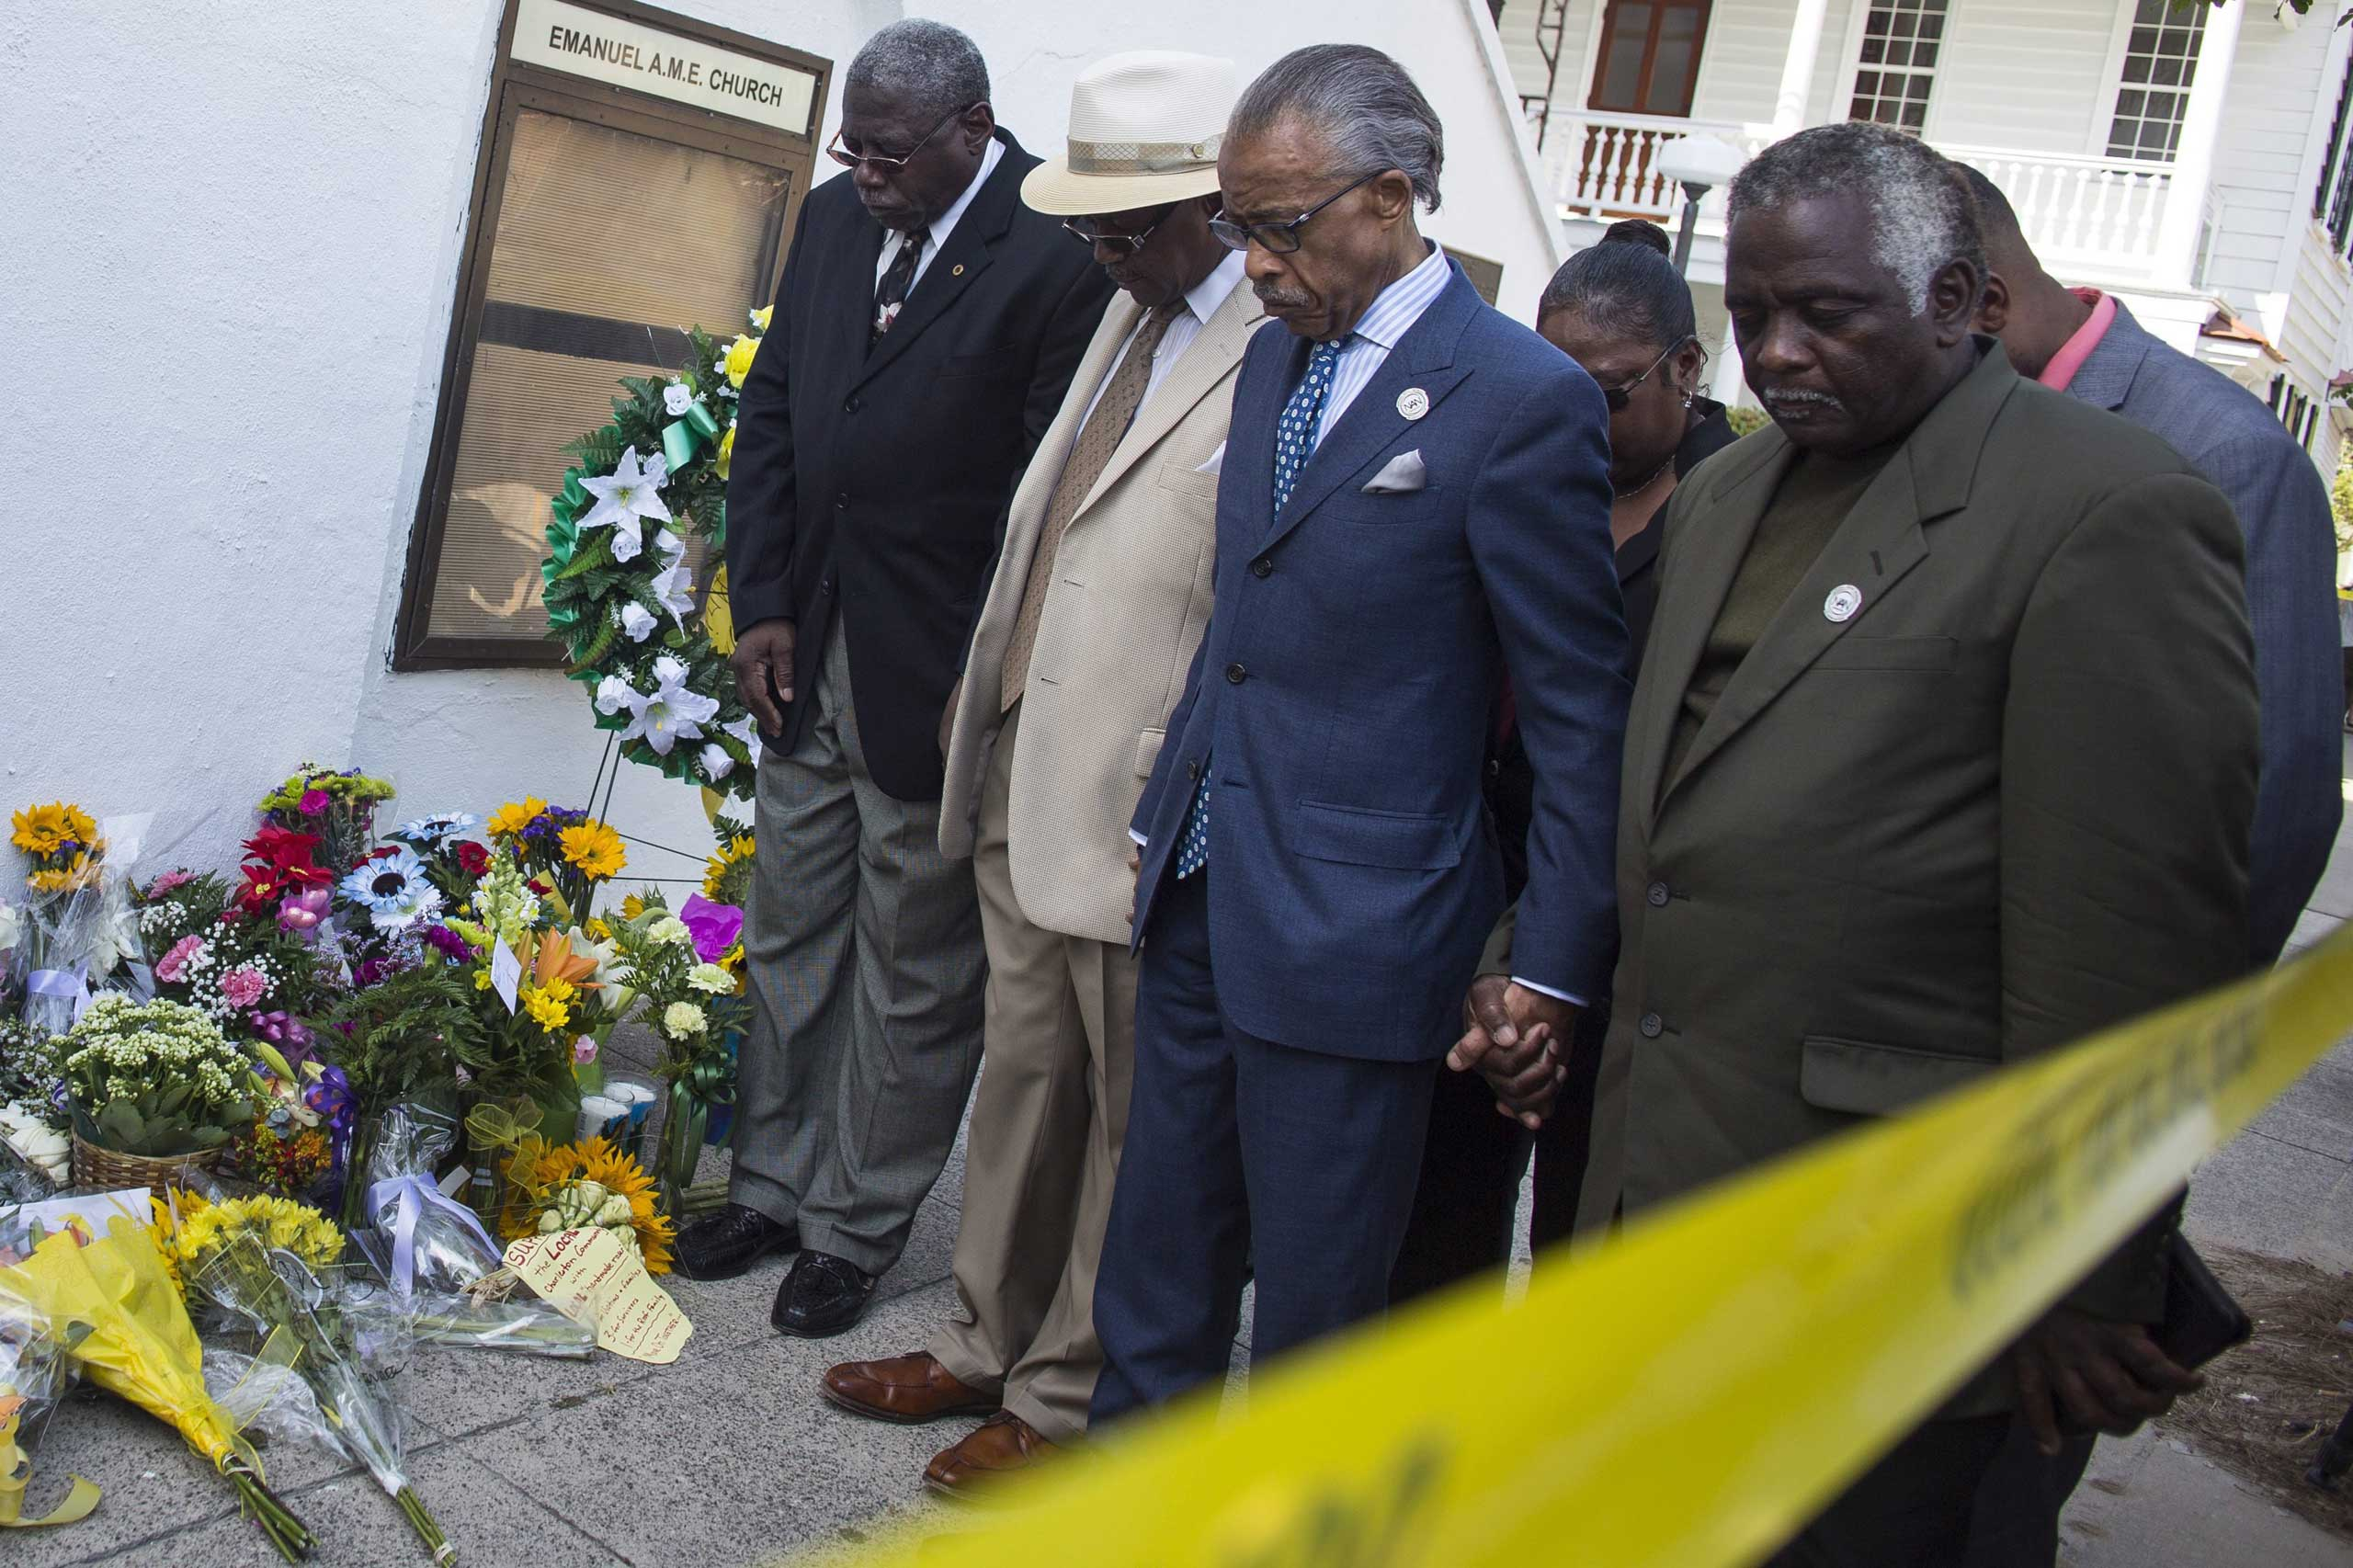 Reverend Al Sharpton visits the memorial site at the Emanuel African Methodist Episcopal Church where nine people were murdered in Charleston, S.C., on June 18, 2015.